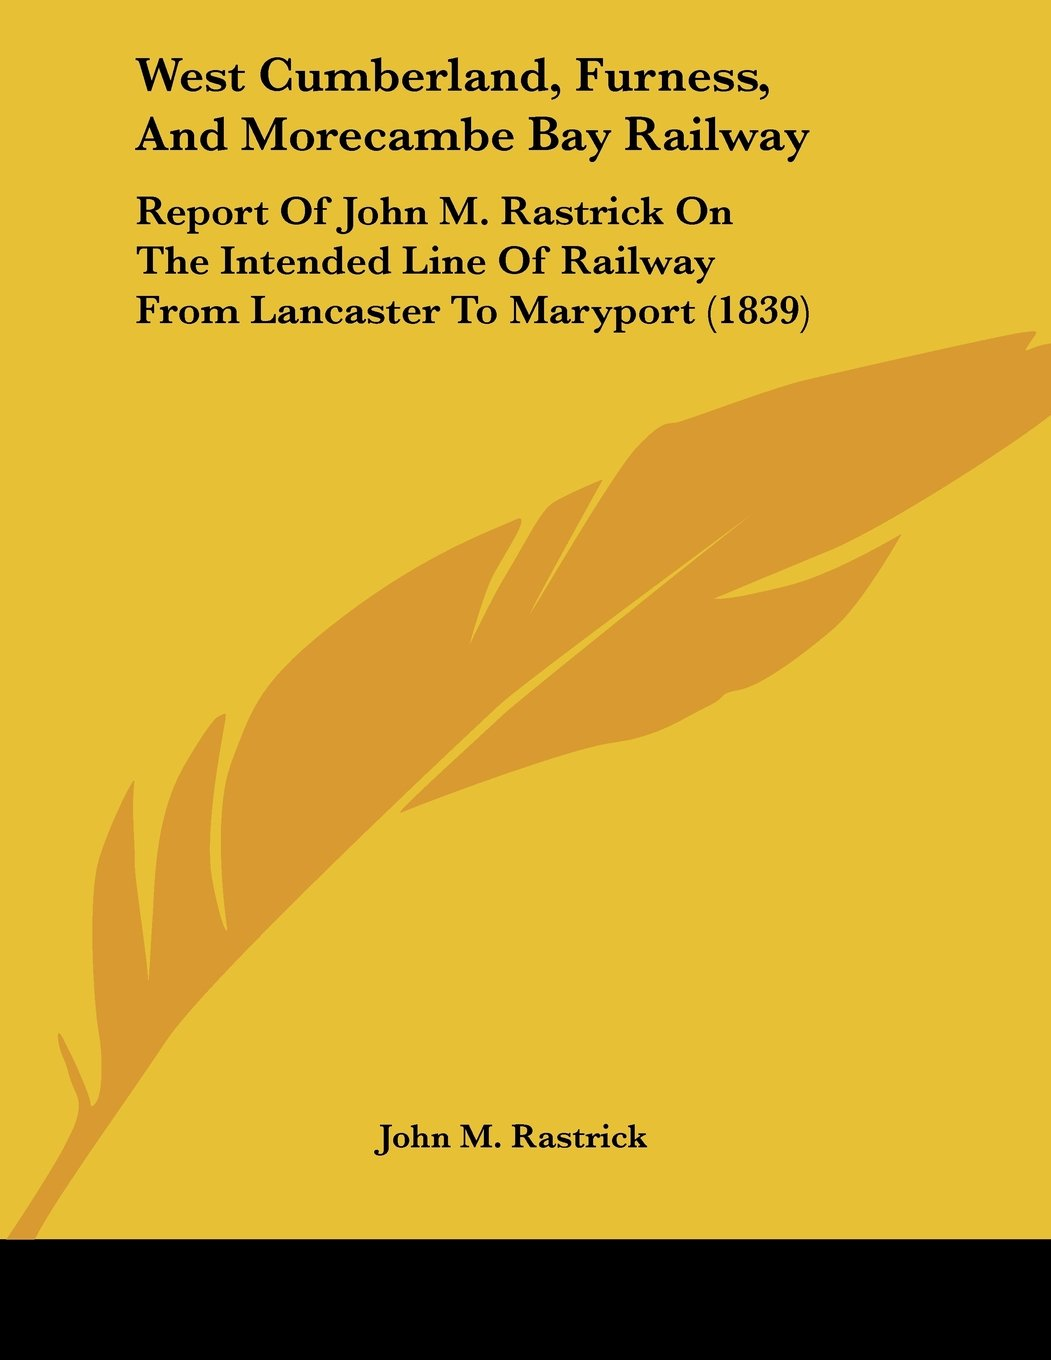 West Cumberland, Furness, And Morecambe Bay Railway: Report Of John M. Rastrick On The Intended Line Of Railway From Lancaster To Maryport (1839) PDF